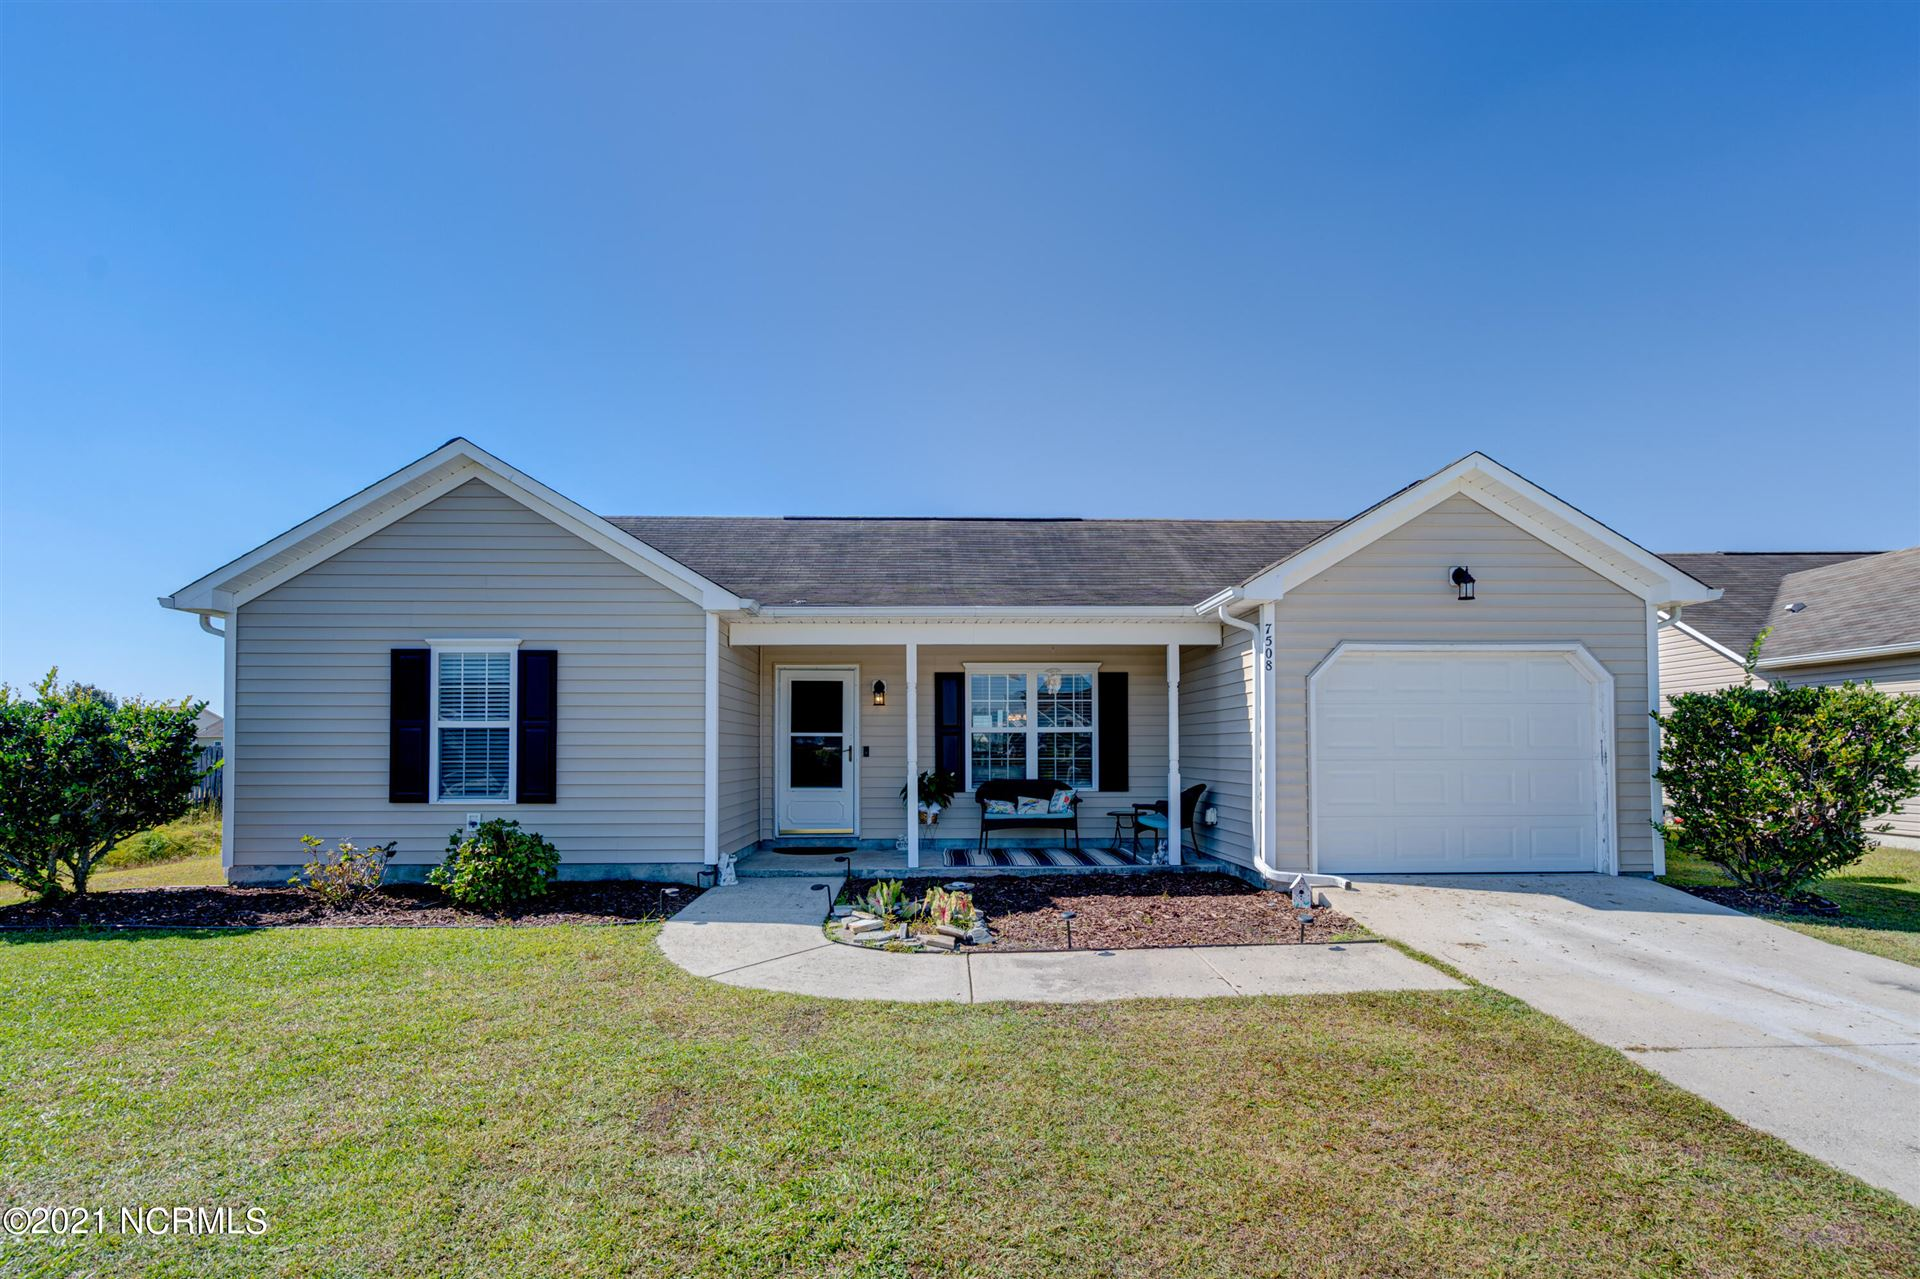 Photo of 7508 Brittany Lakes Drive, Wilmington, NC 28411 (MLS # 100296176)